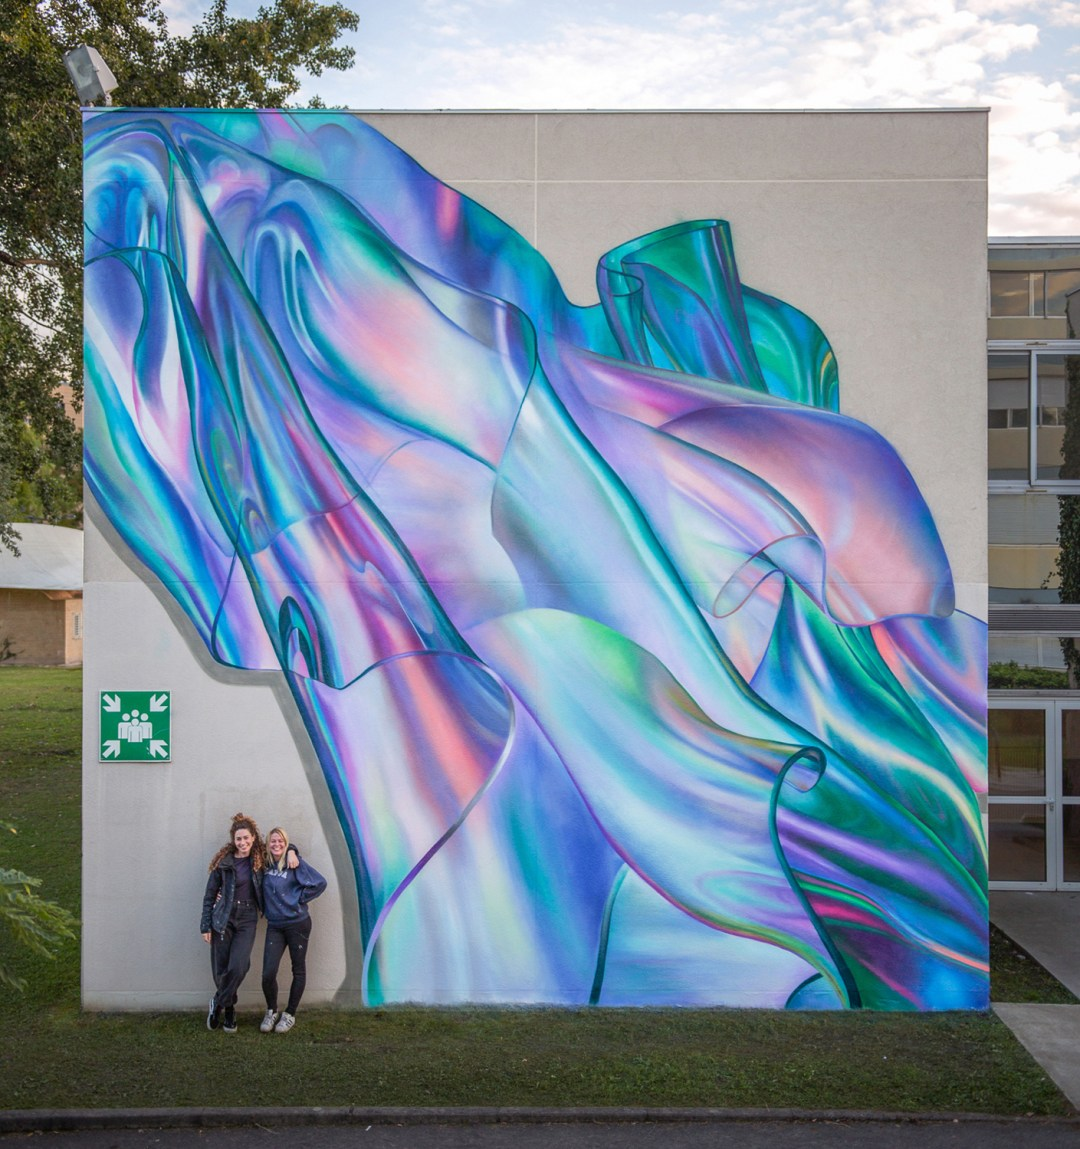 Trompe L'oeil Textiles Billow Across Murals by Rosie Woods in Iridescent Ripples